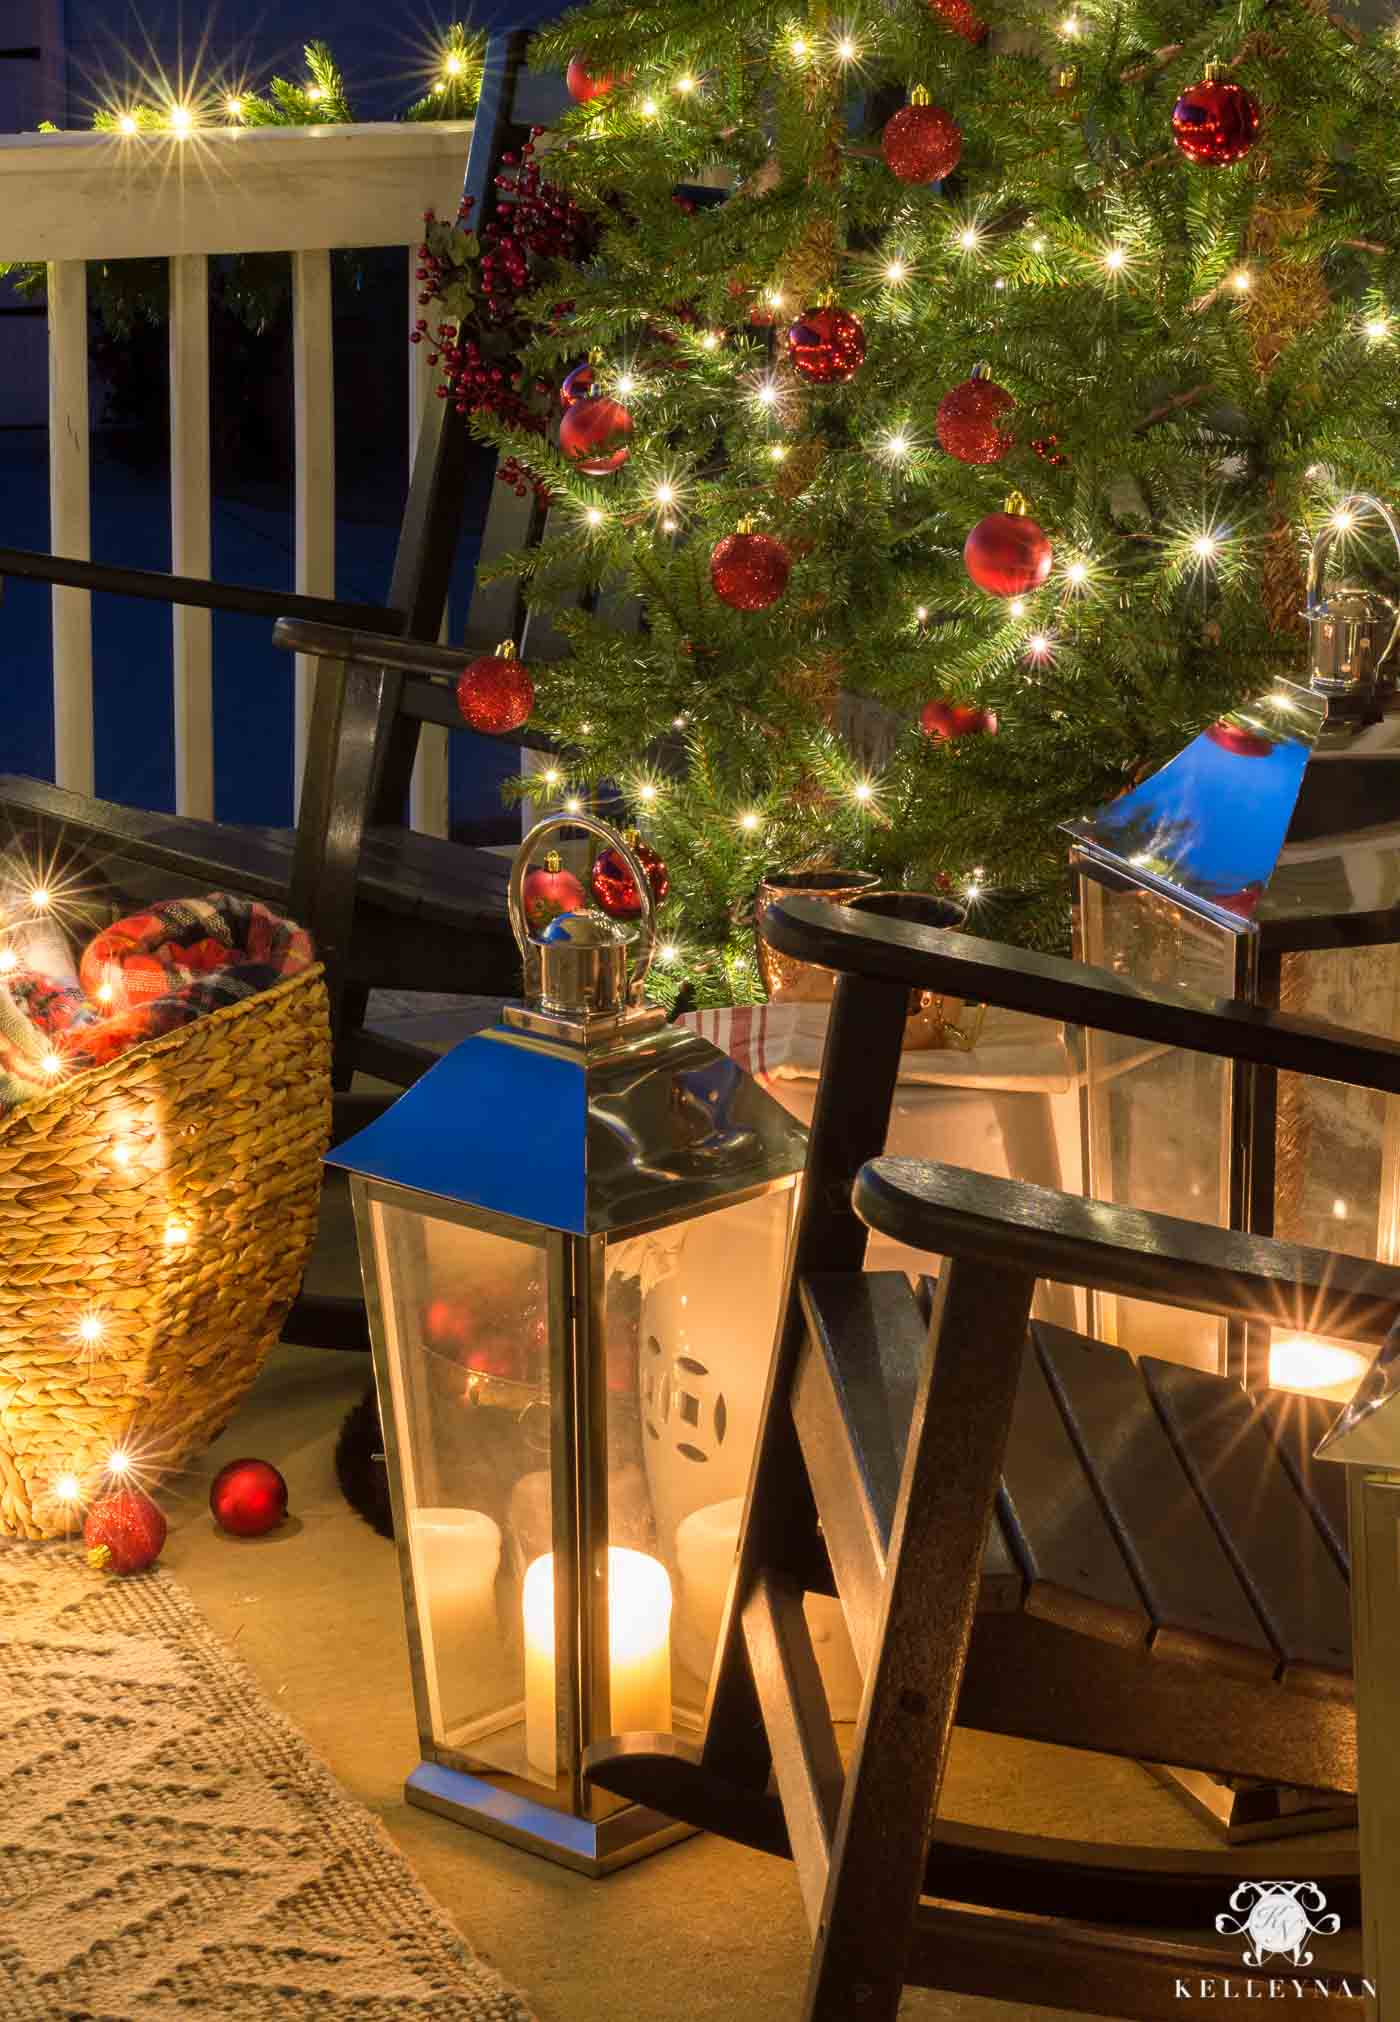 Easy Christmas decorations for the front porch with lanterns